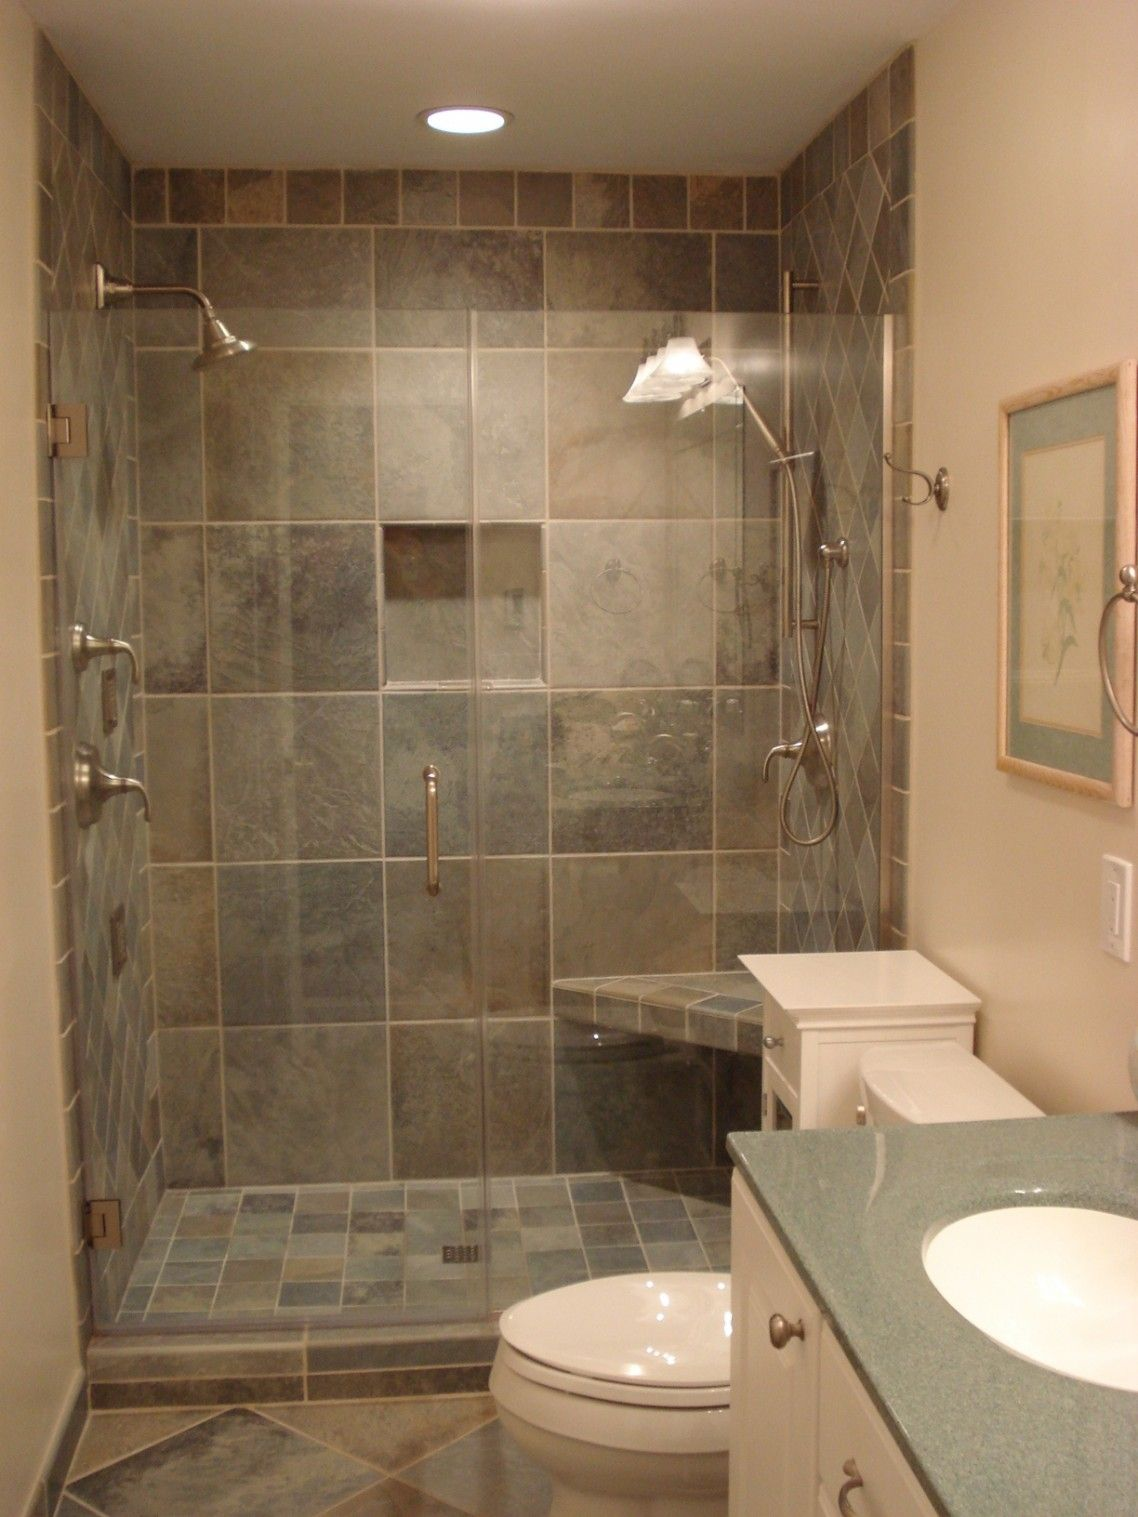 Bathroom Remodels With Showers Showerslatetileswalland - Diy bathroom shower flooring ideas